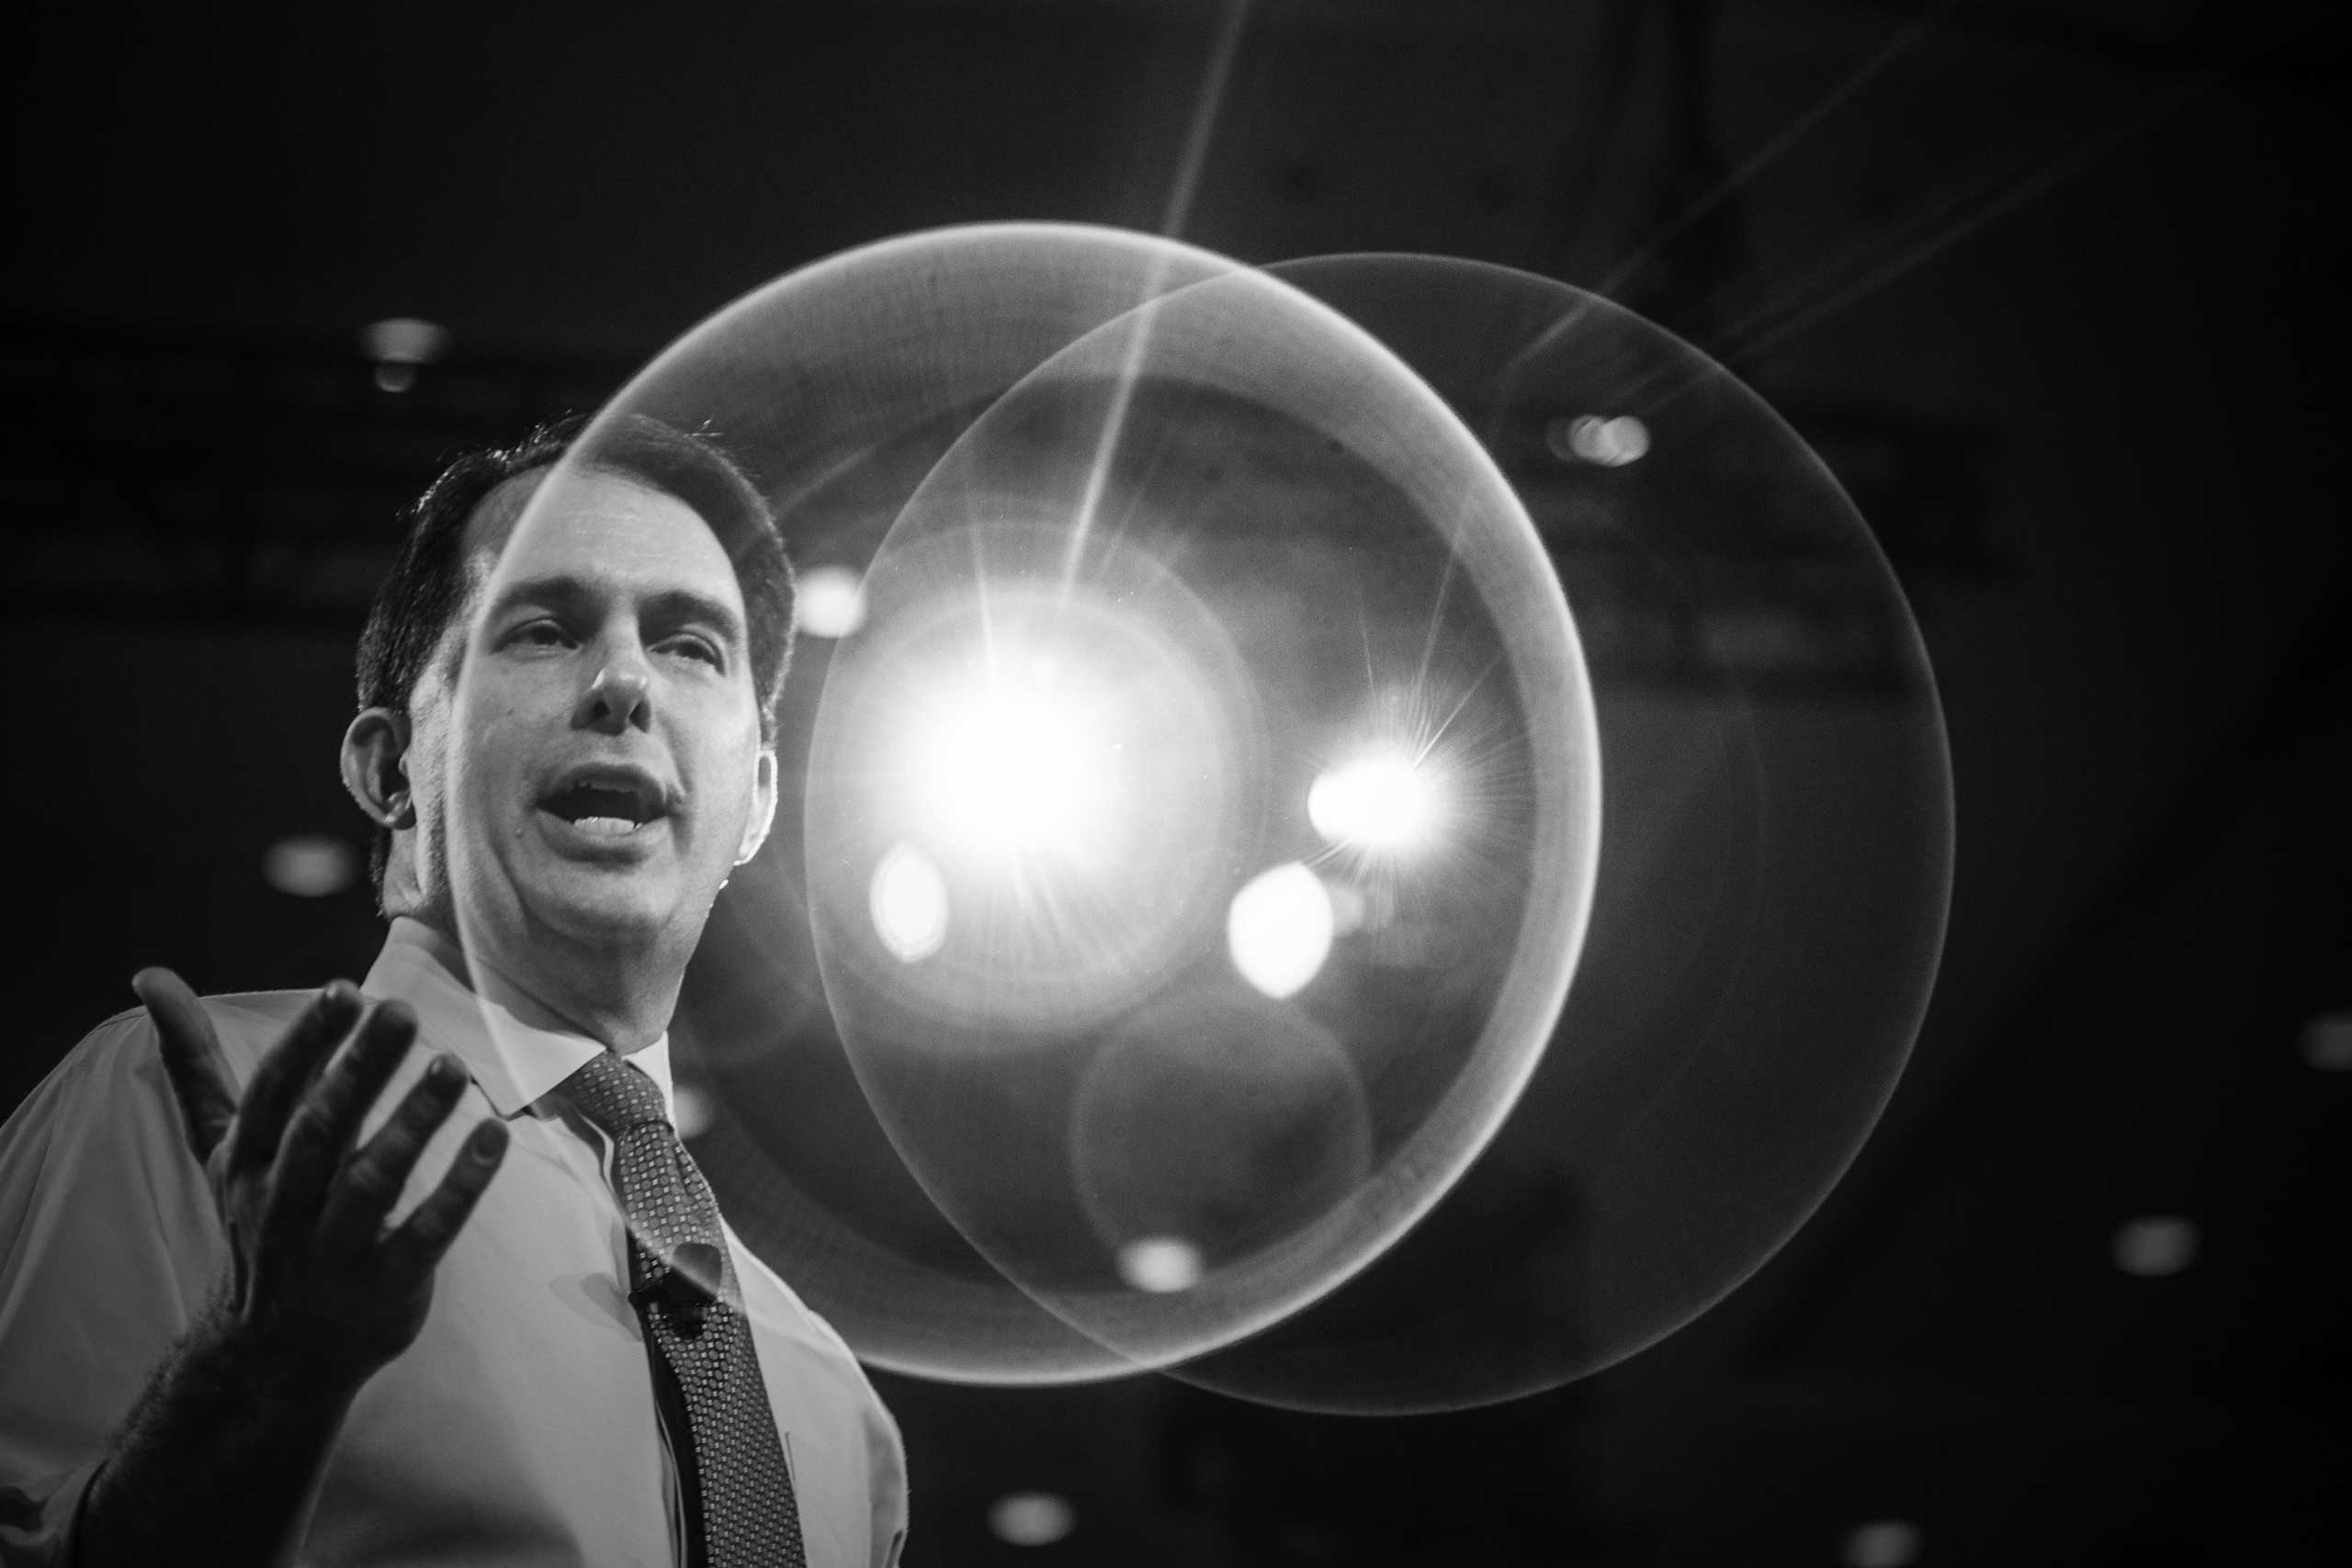 Governor of Wisconsin Scott Walker at the Conservative Political Action Conference in National Harbor, Md. on Feb. 26, 2015.